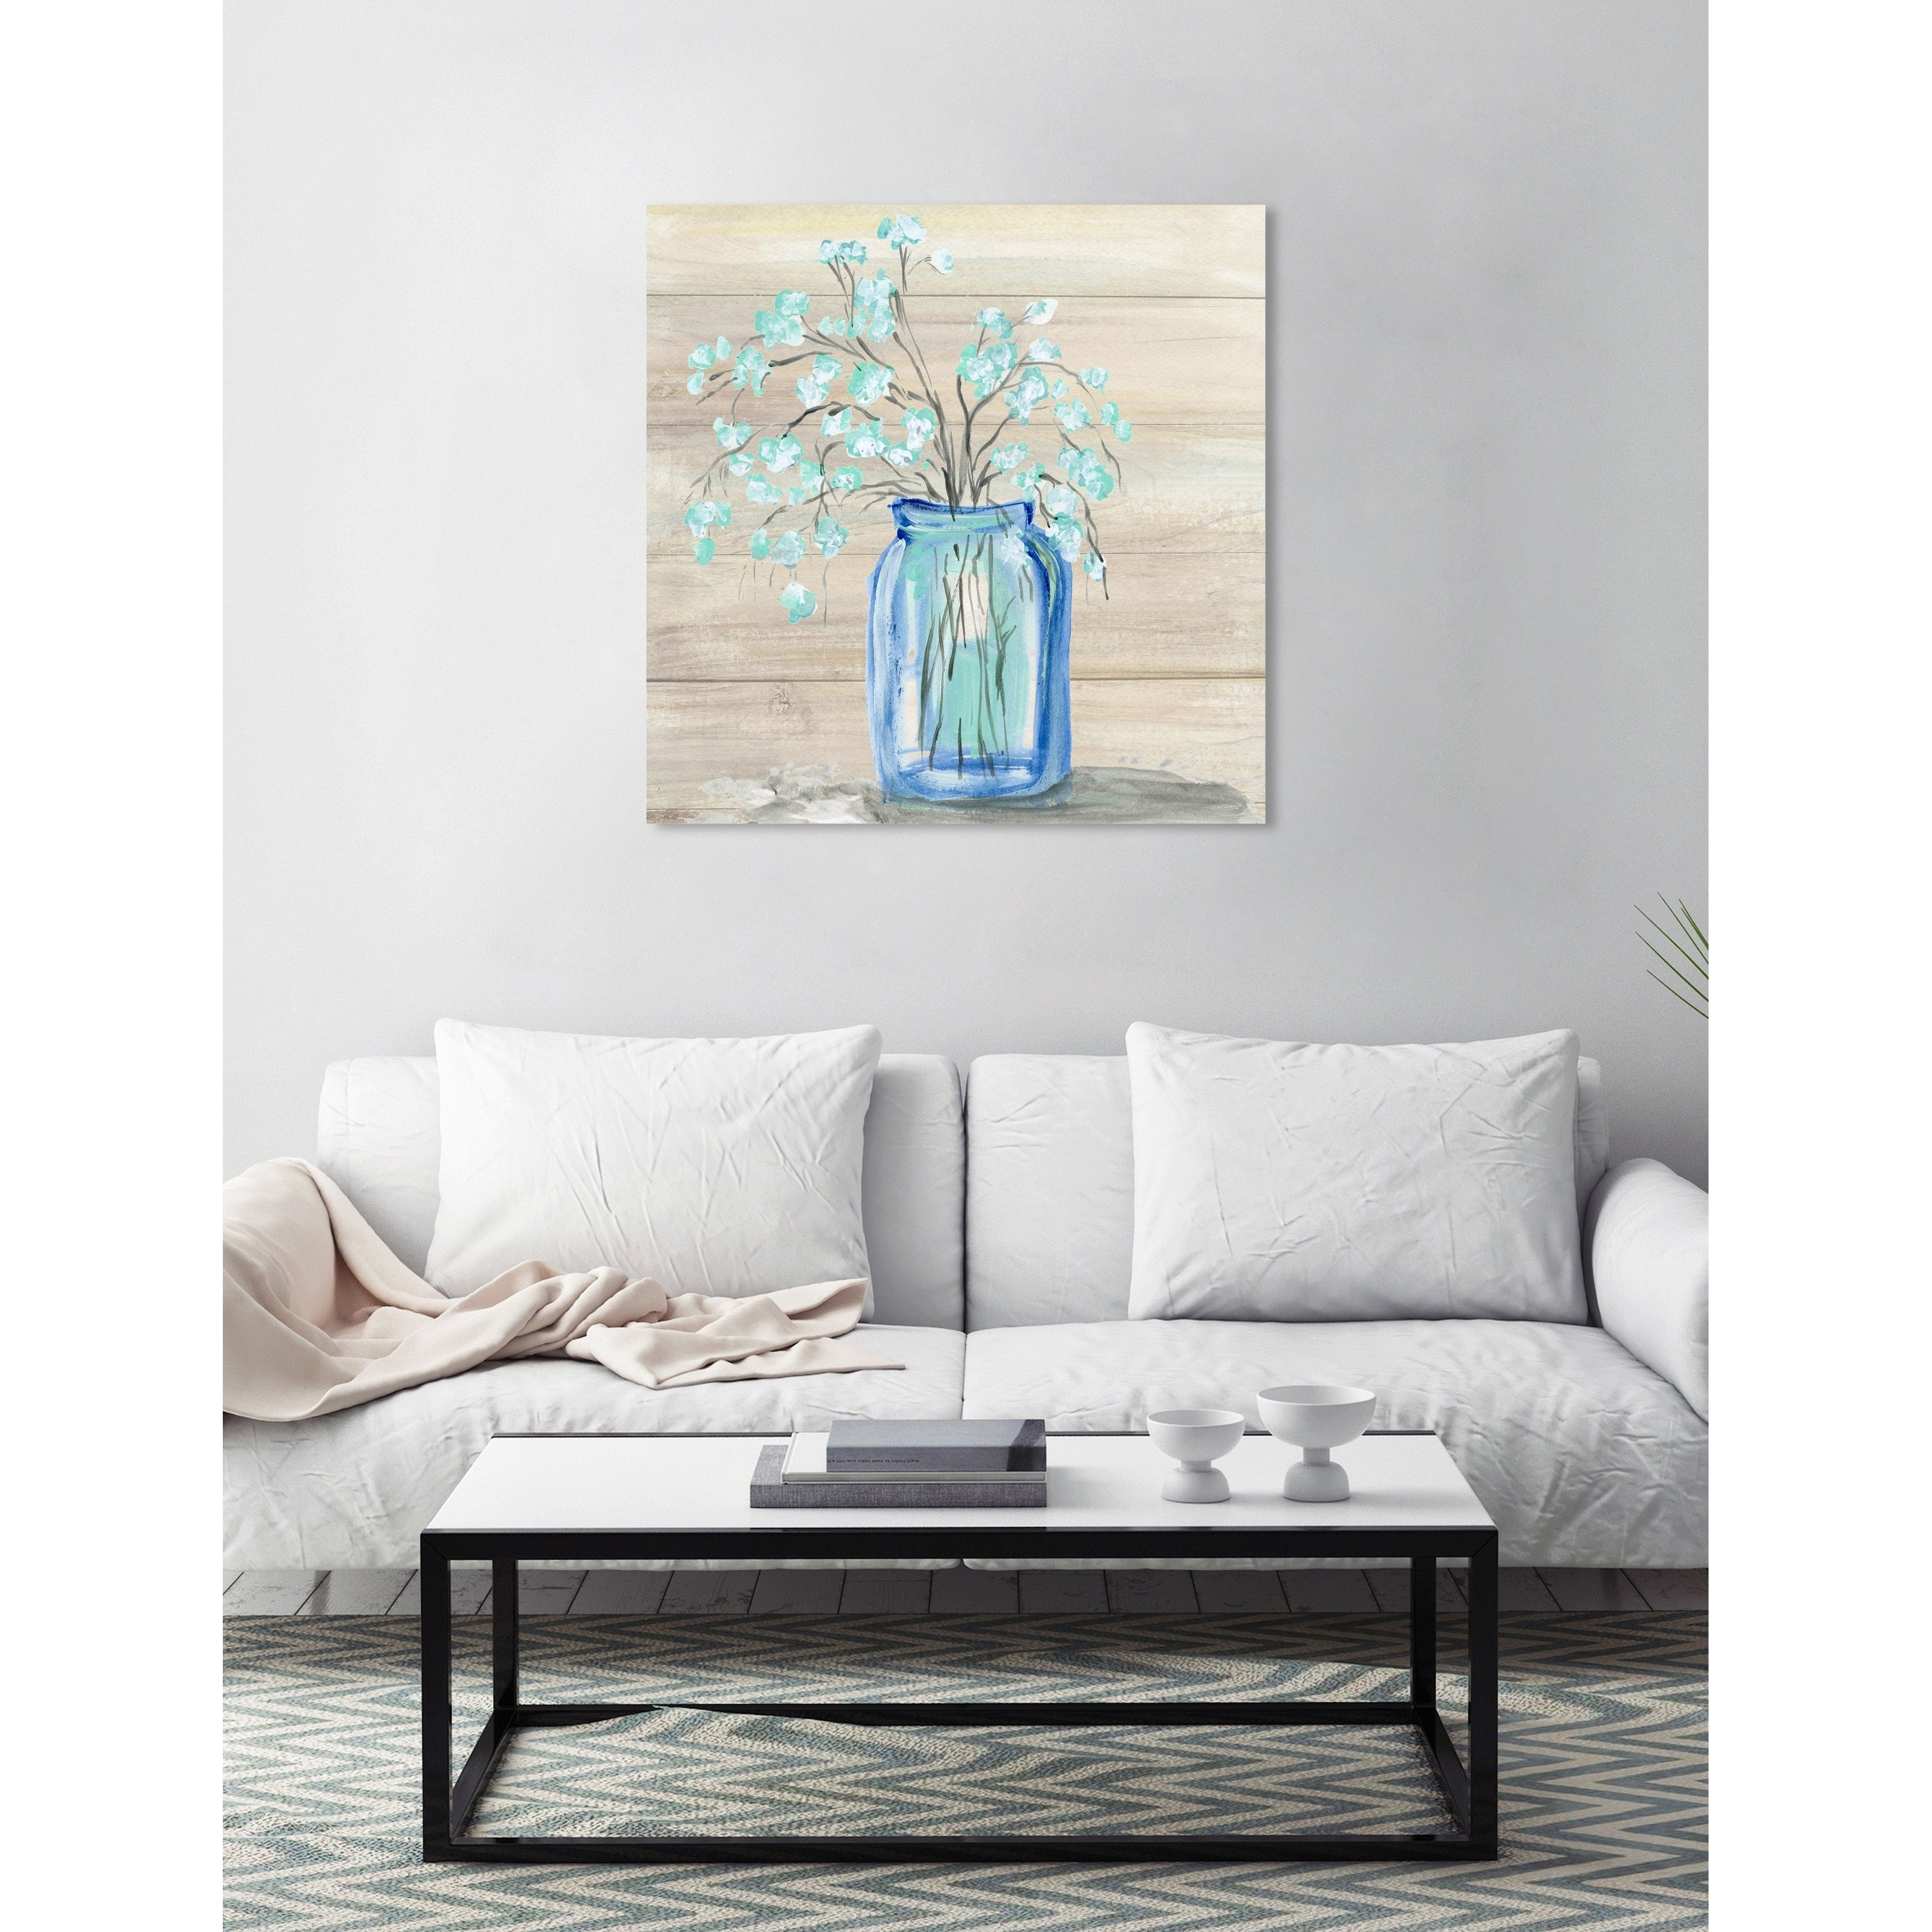 Shop Oliver Gal 26548 Mason Jar Flowers Floral And Botanical Wall Art Canvas Print Blue White Overstock 24301797